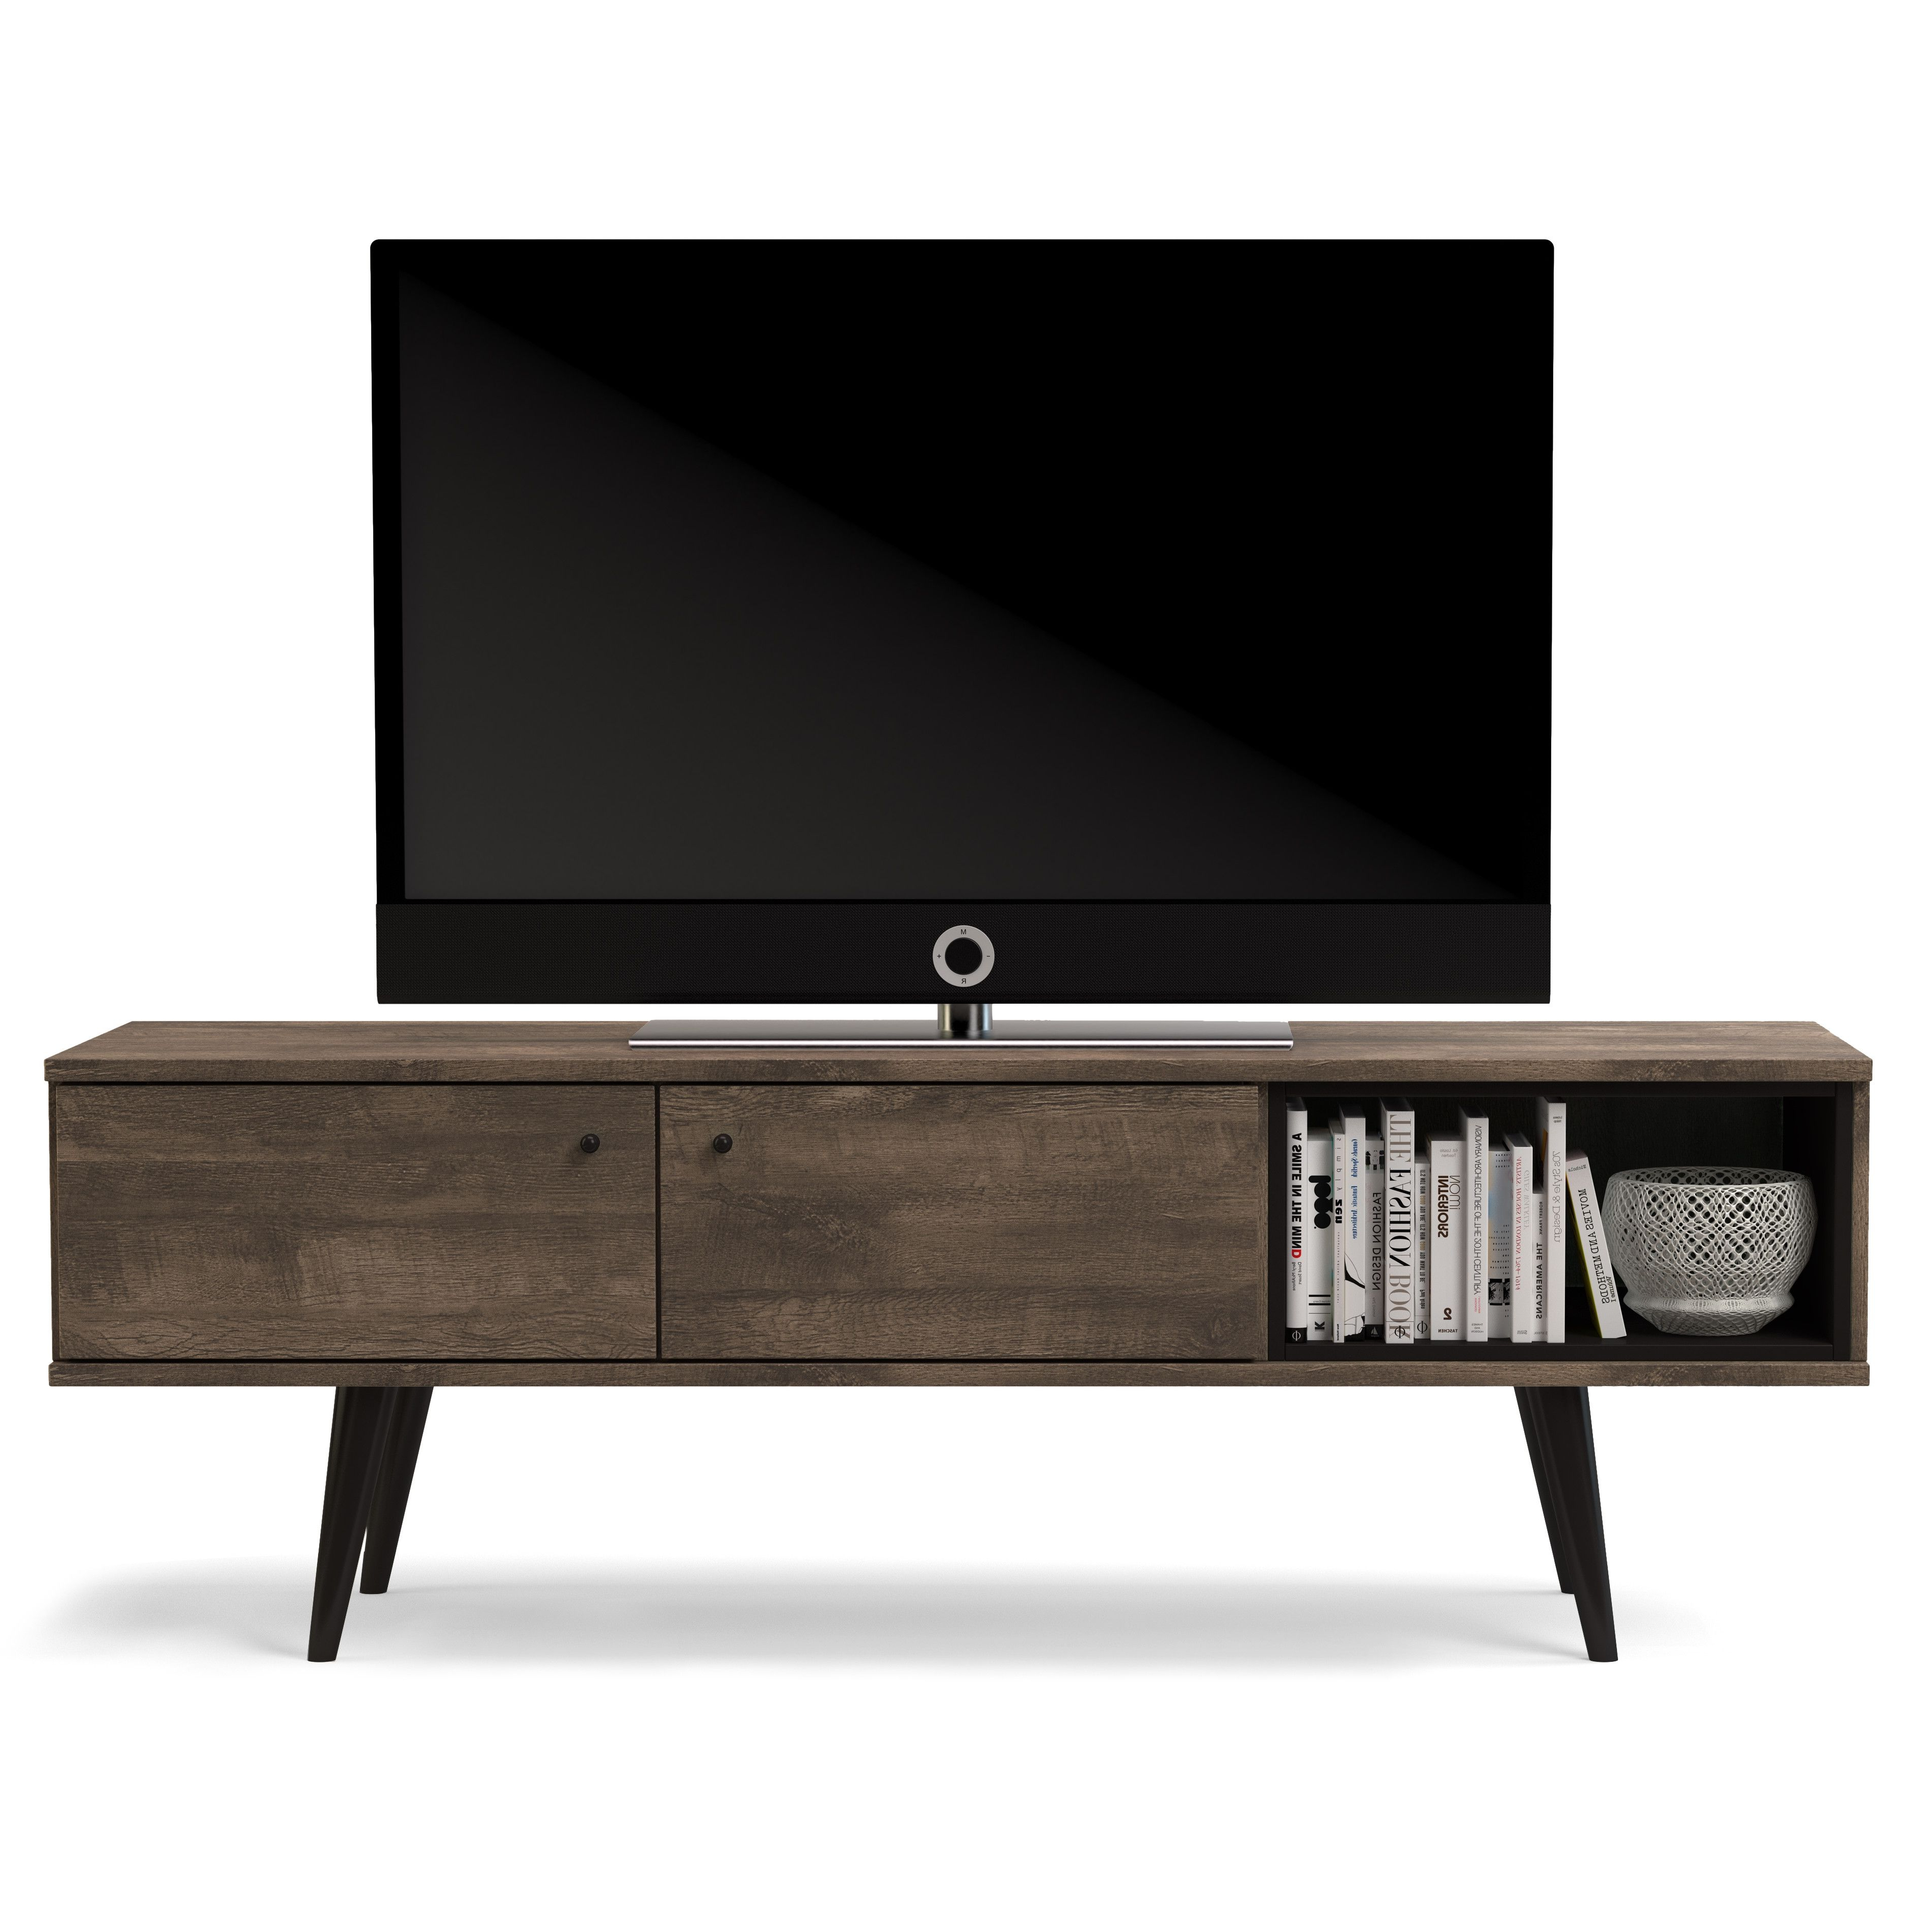 "Norloti Tv Stand For Tvs Up To 60"" (Gallery 25 of 36)"